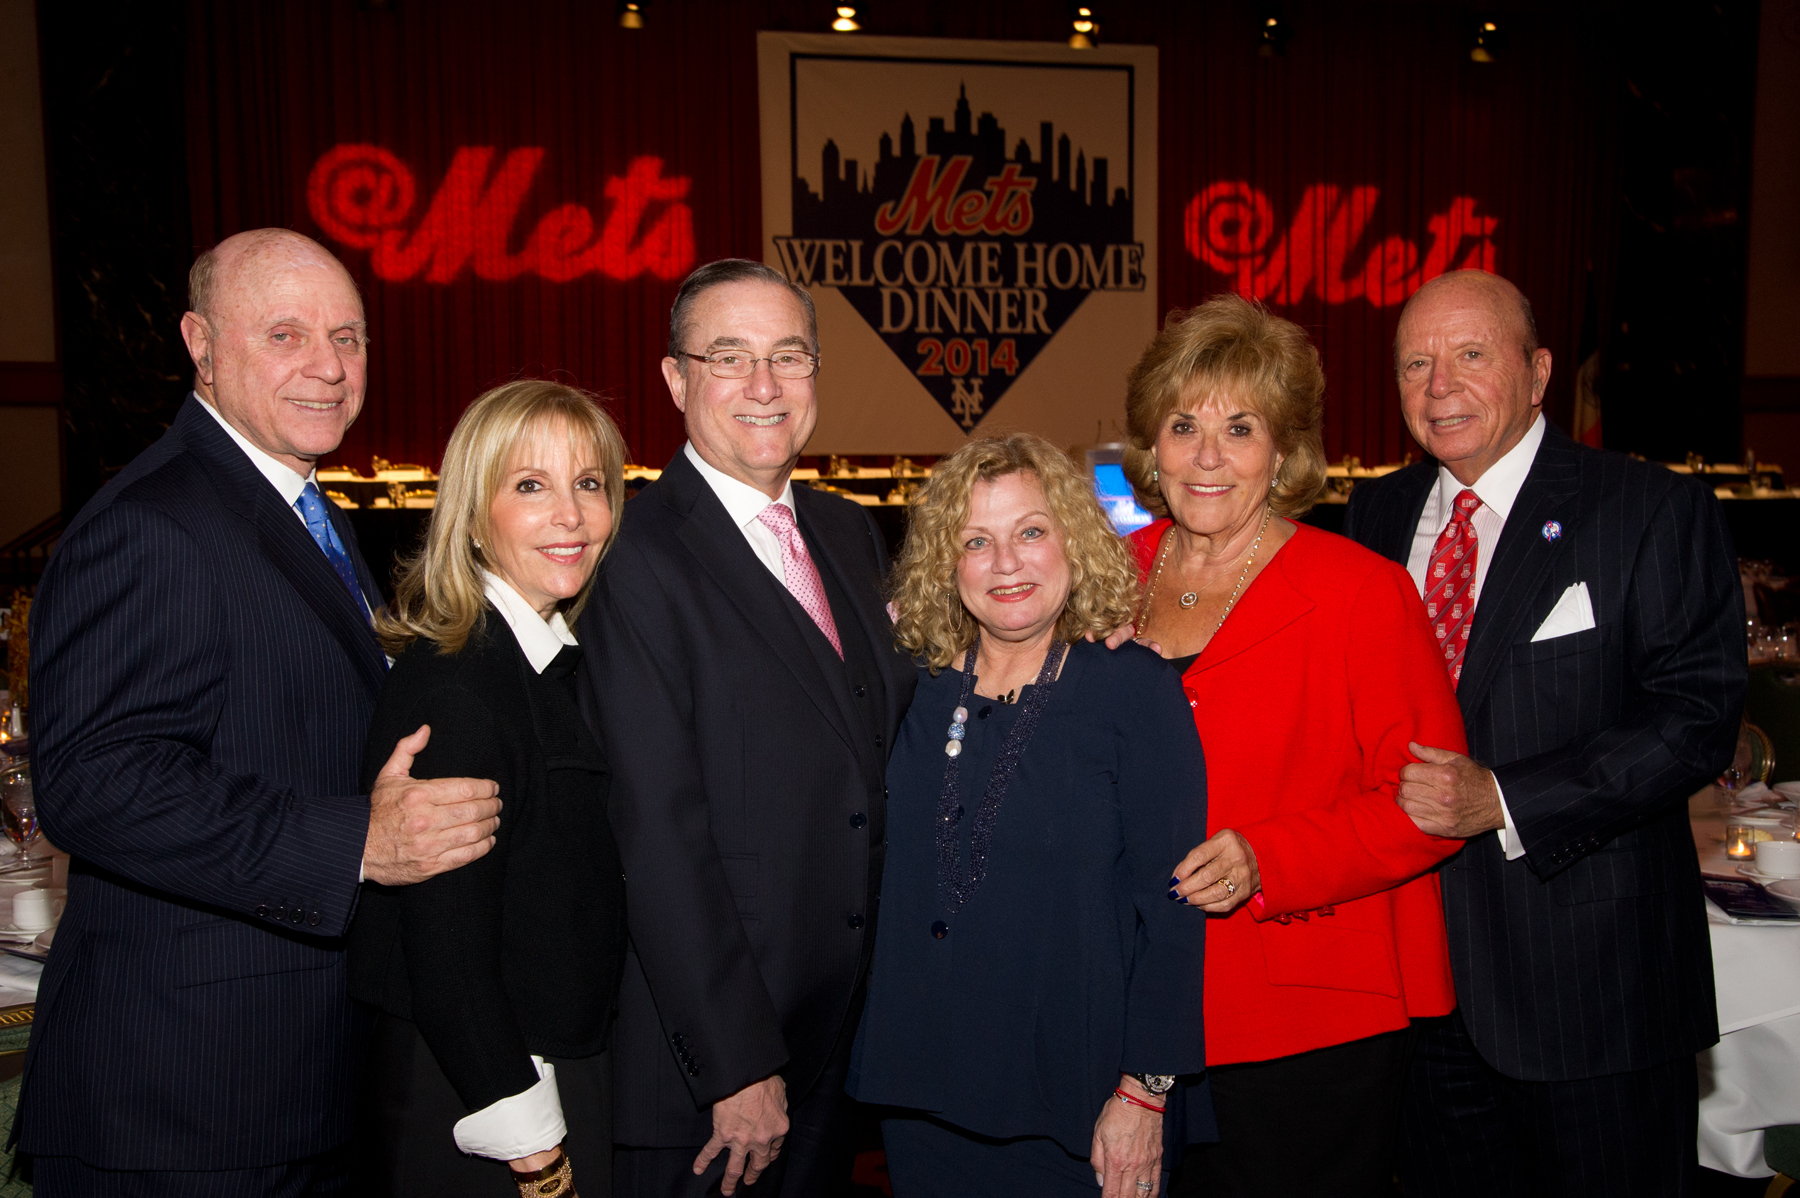 From left: Michael and Dayle Katz, Michael Ruth Slade, Iris and Saul Katz.